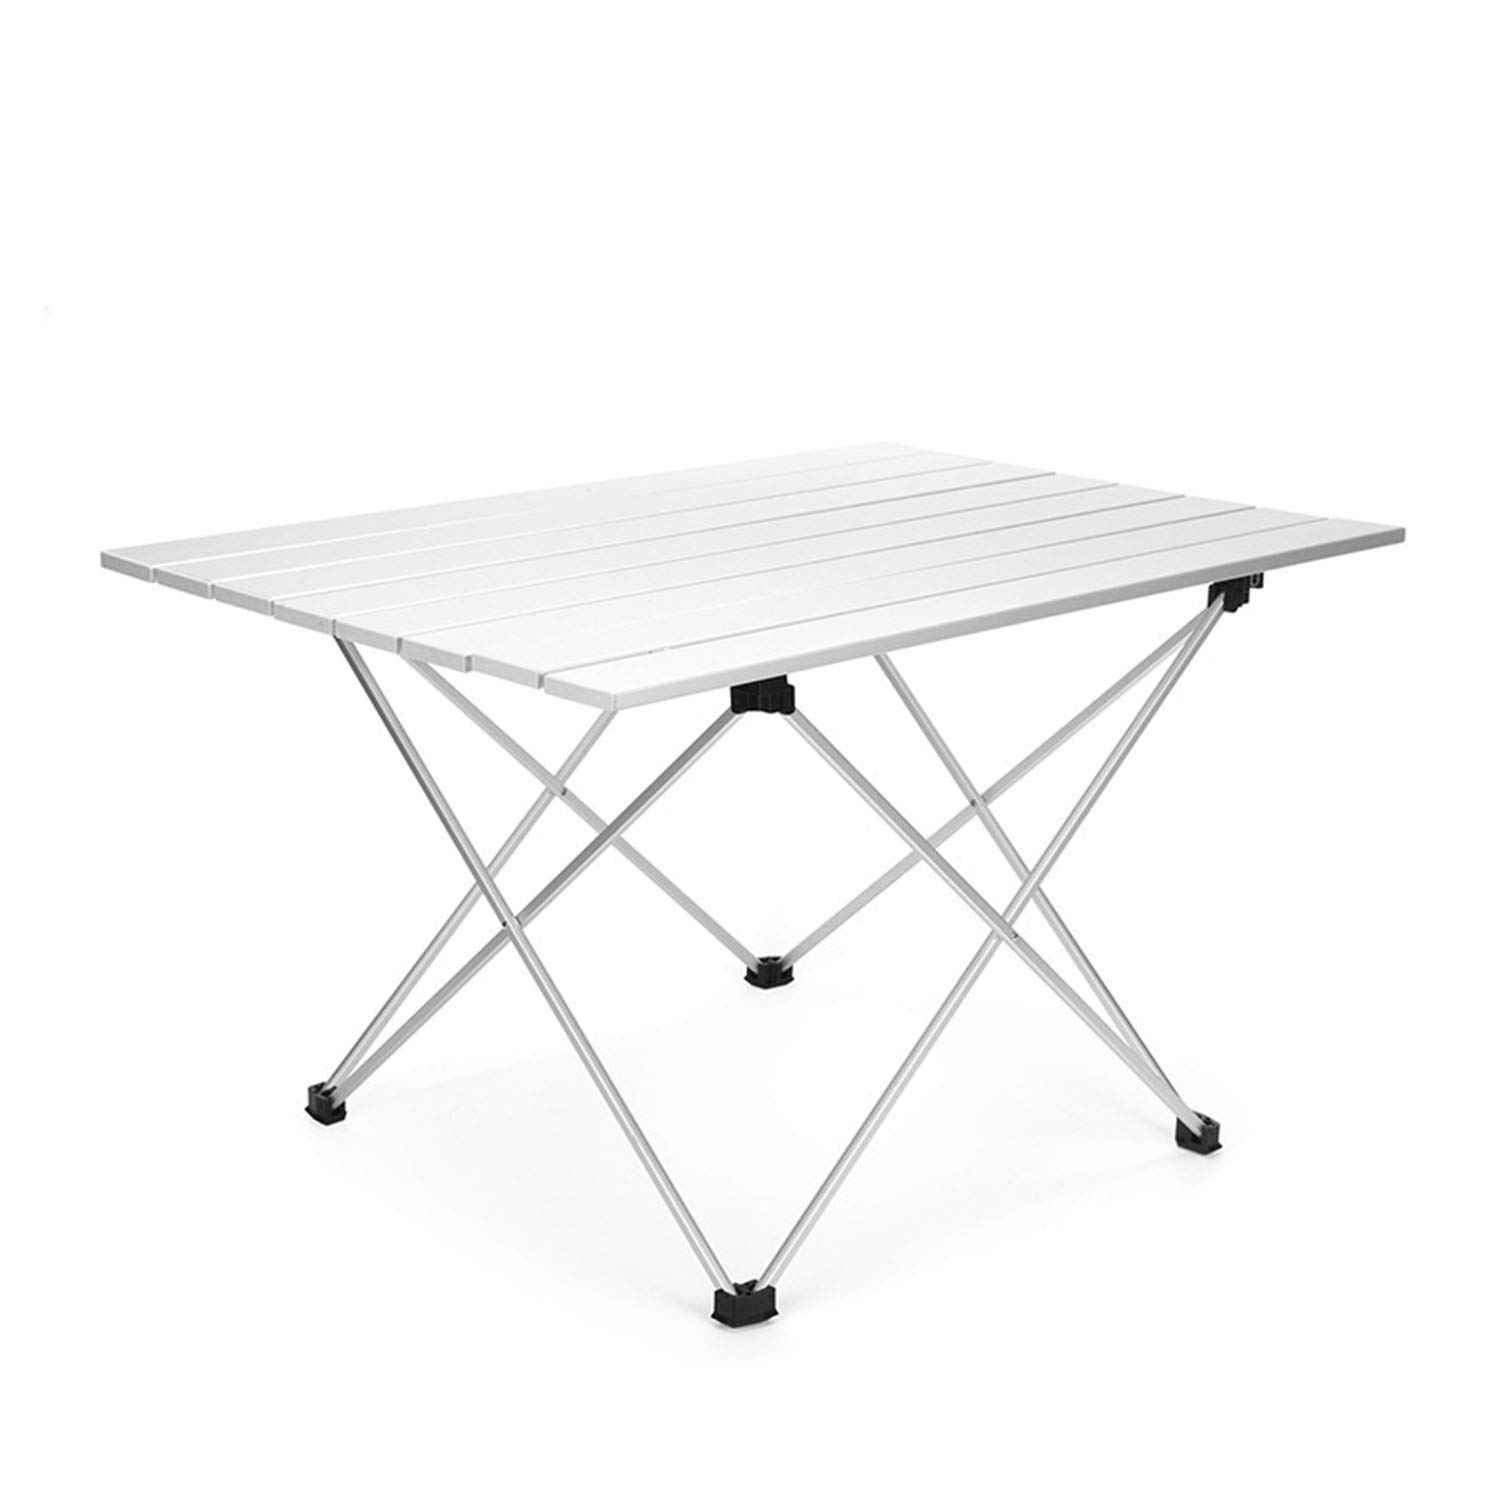 YOZOOE Camping Portable Picnic Table Barbecue Table, Outdoor Aluminum Folding Table, Multi-Special Camping Equipment (Size : L) by YOZOOE